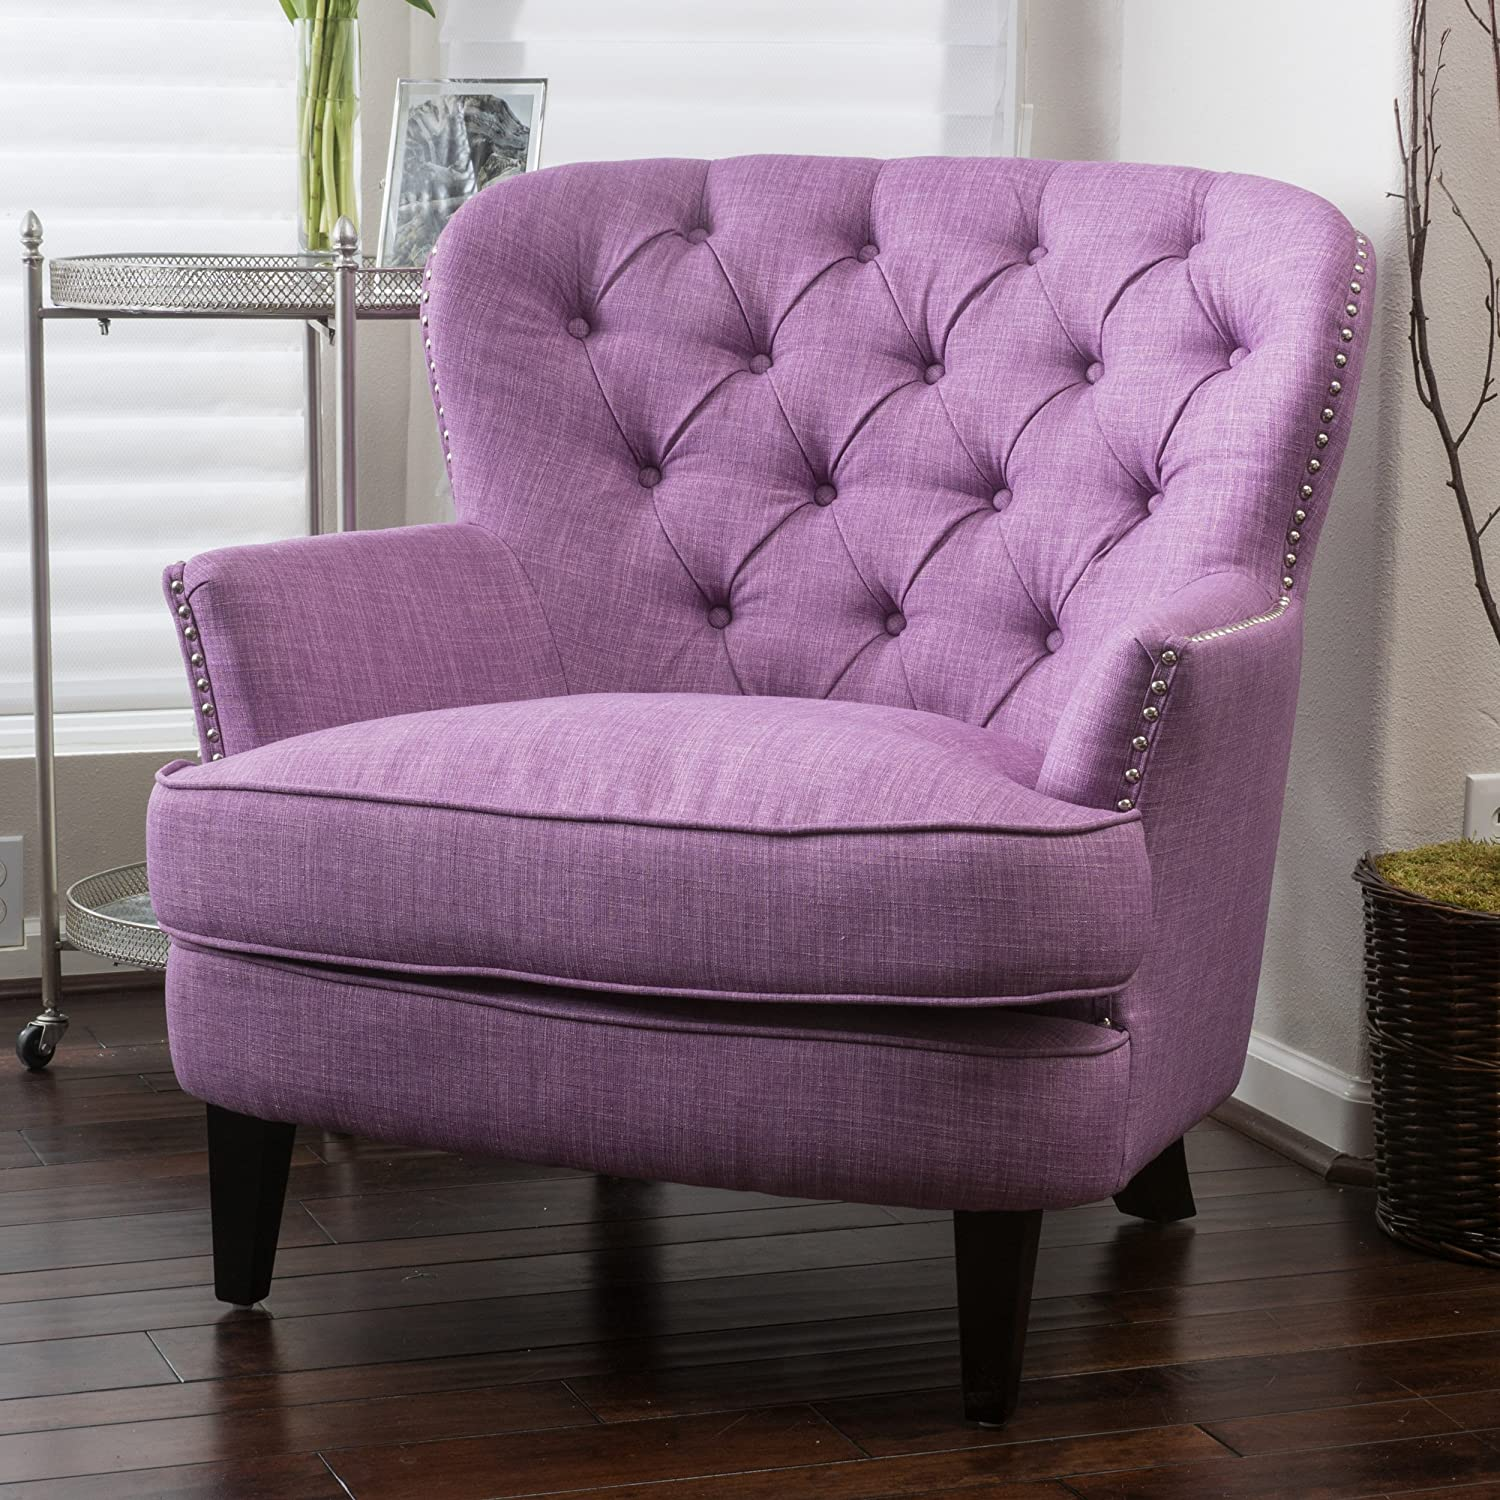 Light Purple Chair For Living Room Part 62